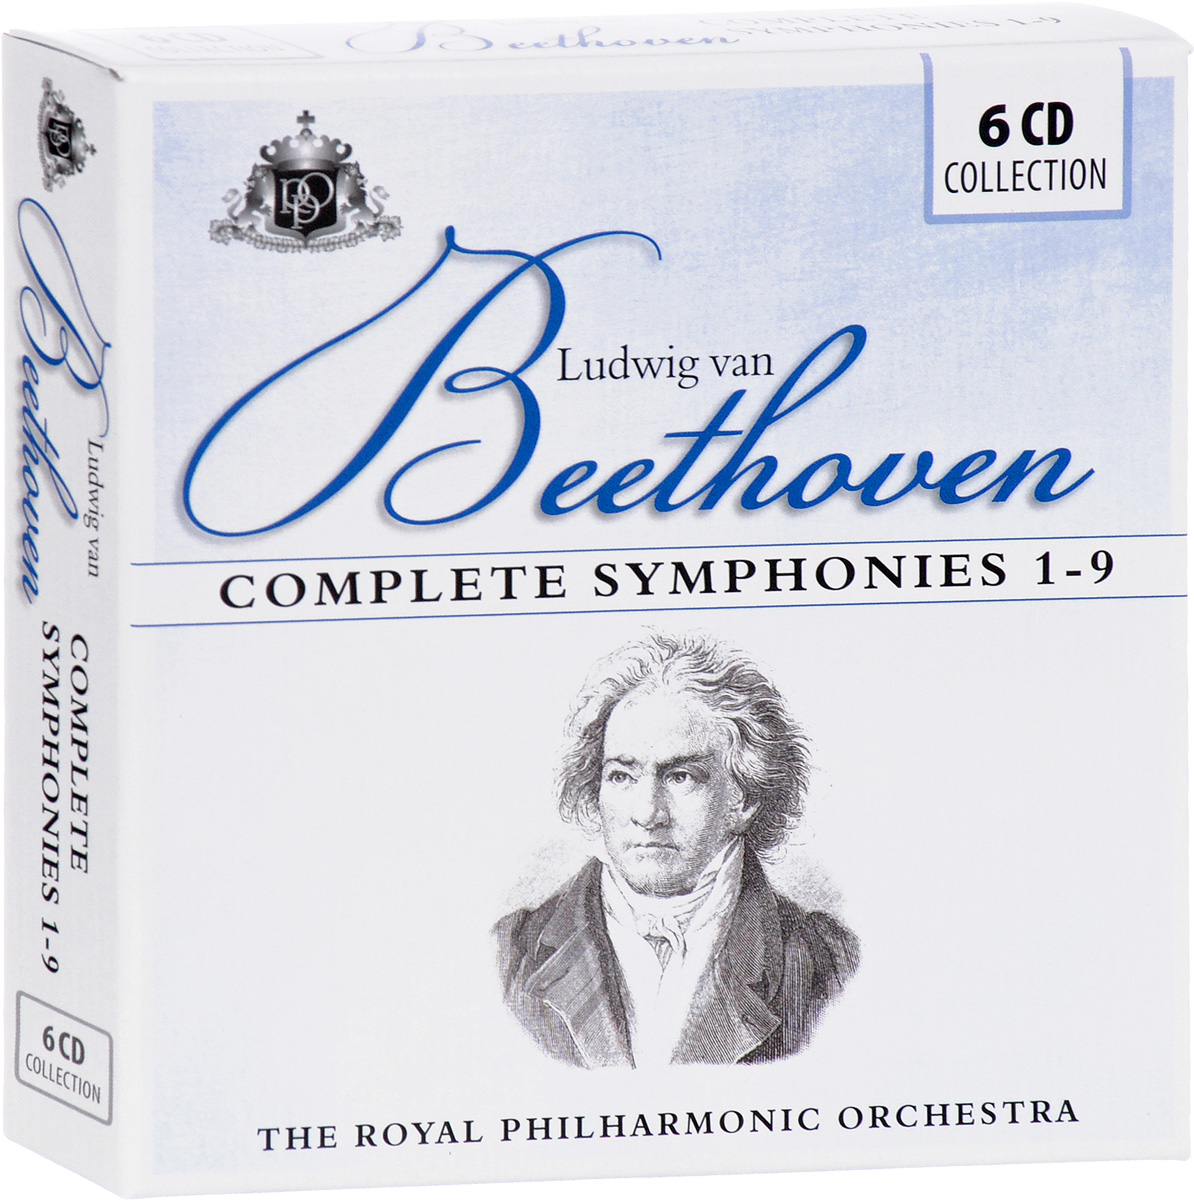 The Royal Philharmonic Orchestra. Beethoven: Complete Symphonies 1-9 (6 CD) саймон престон тревор пиннок the english concert orchestra simon preston trevor pinnock handel complete organ concertos 3 cd